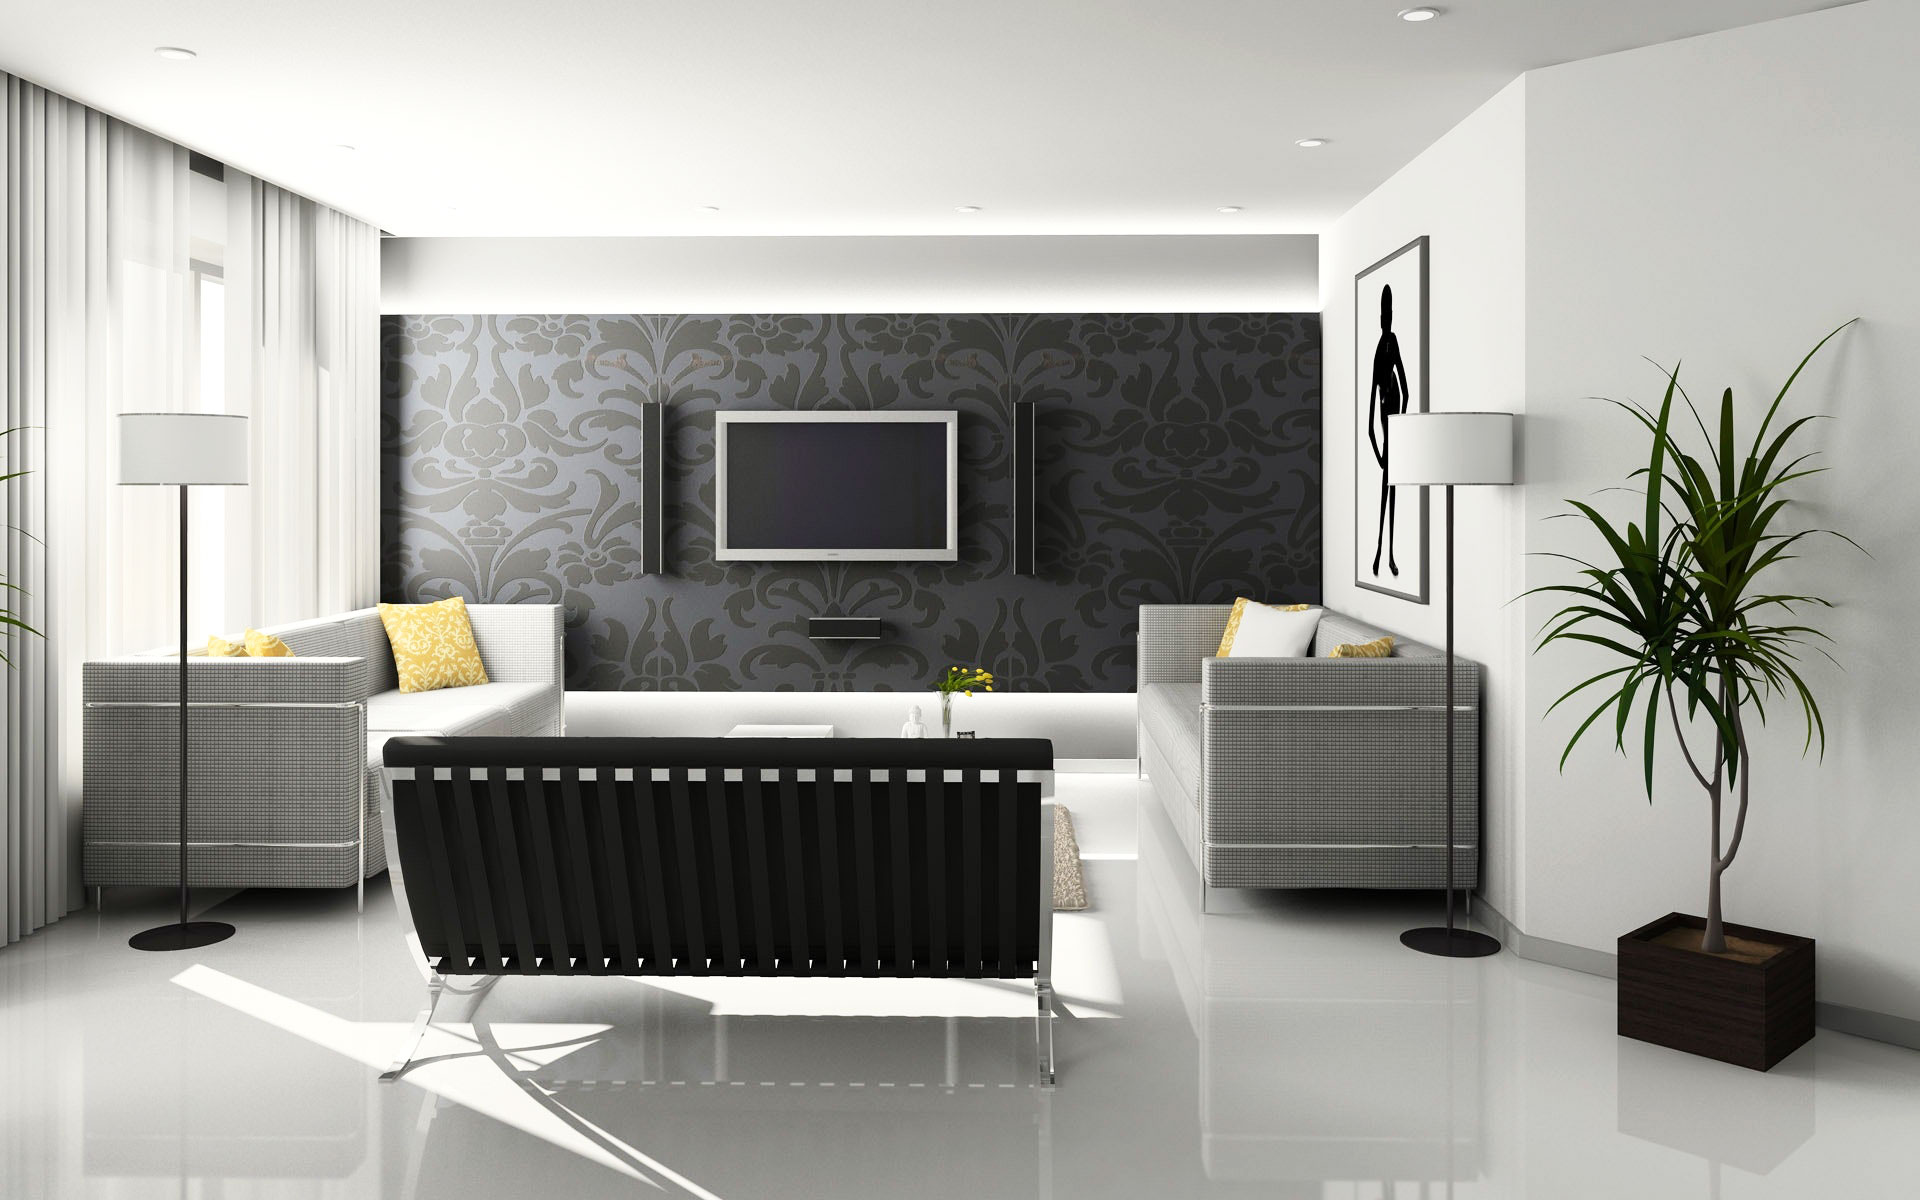 Modern furniture blends with ornamental textile in a Contemporary living room